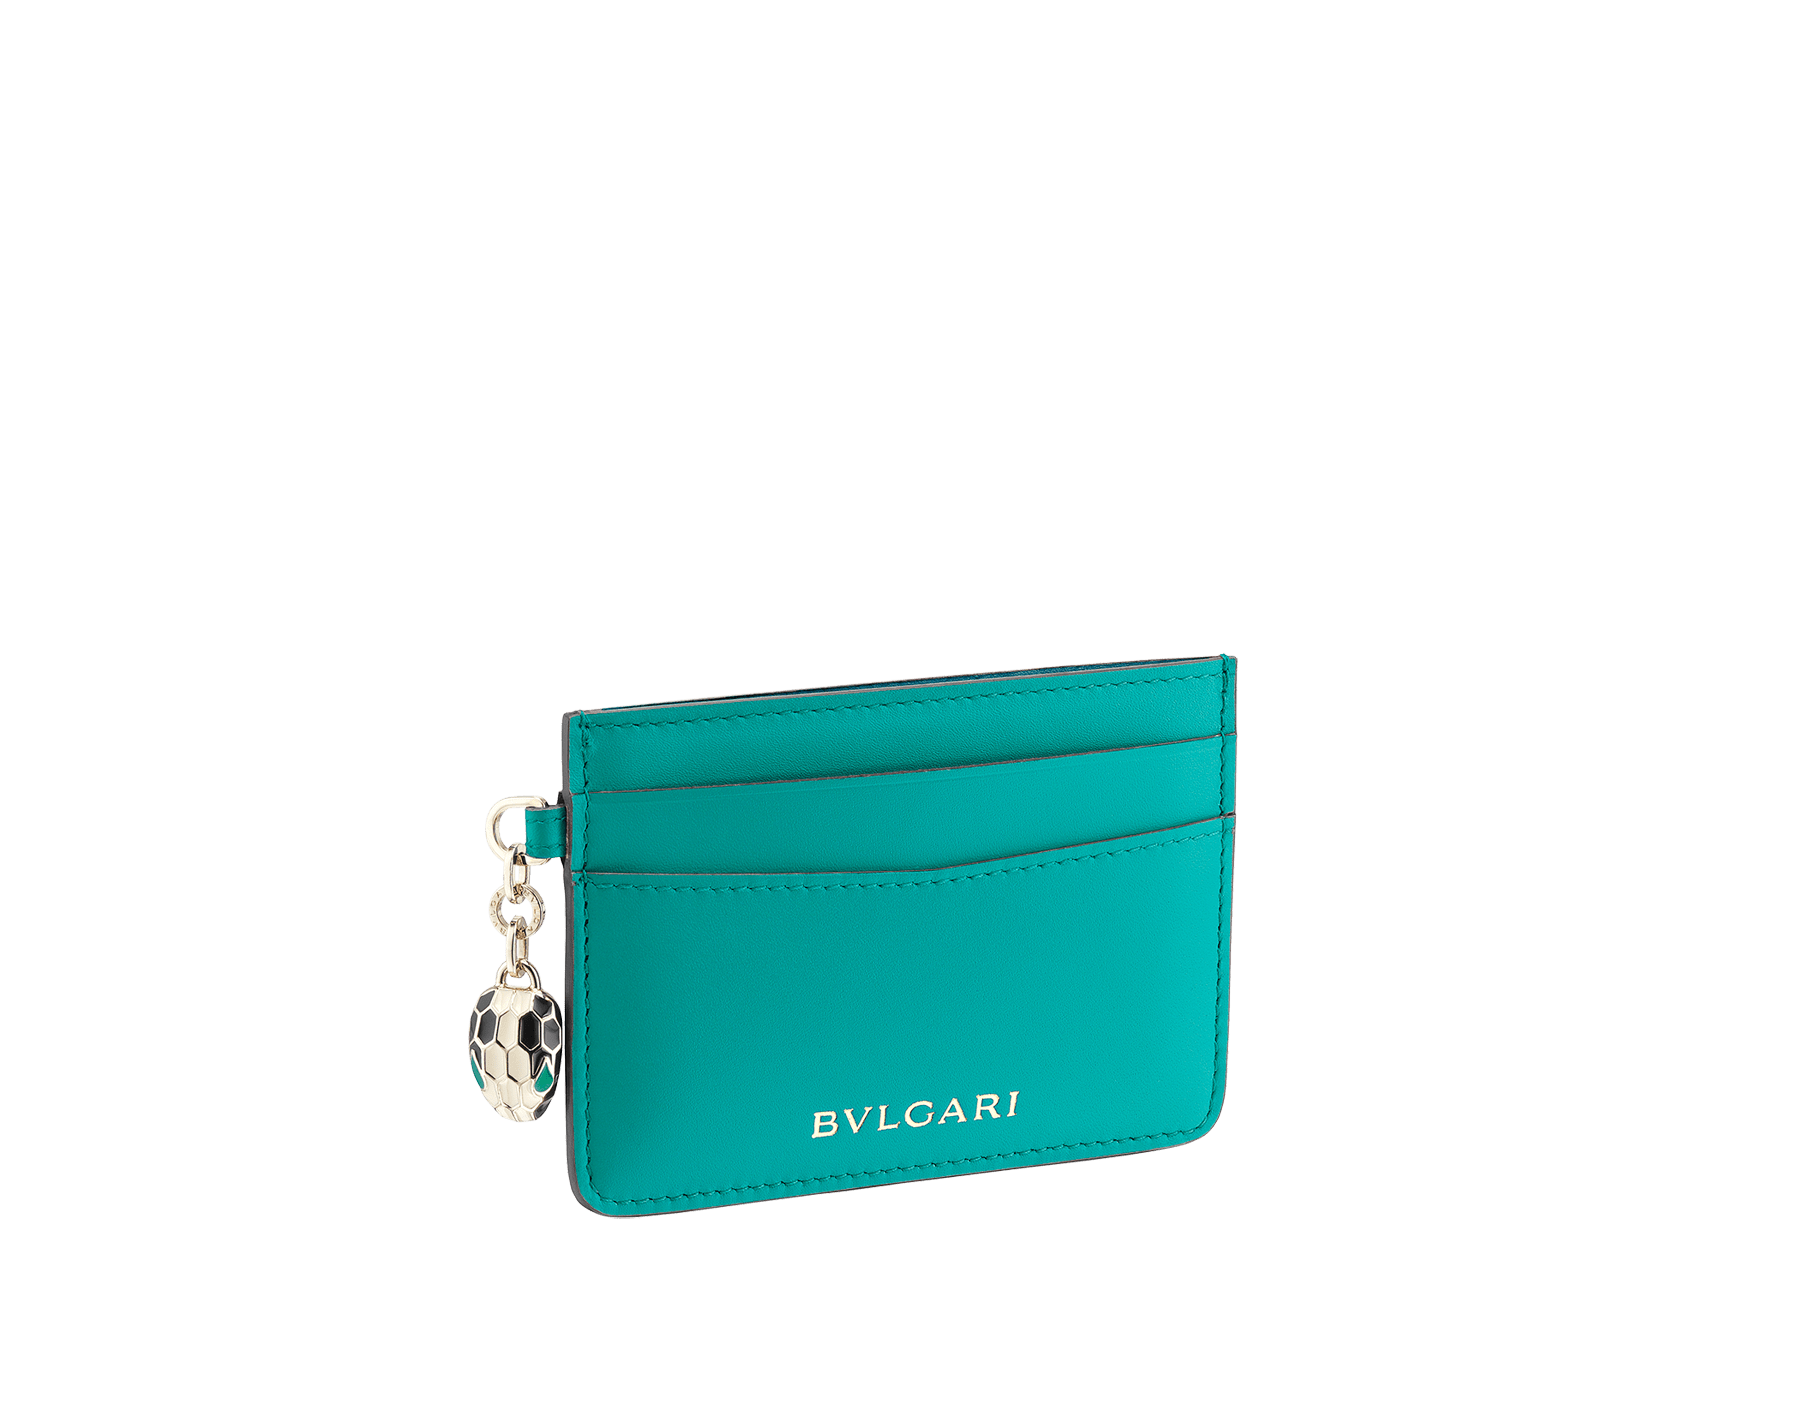 Serpenti Forever credit card holder in tropical tourquoise and deep jade calf leather. Iconic snakehead charm in black and white enamel, with green malachite enamel eyes. 288020 image 1